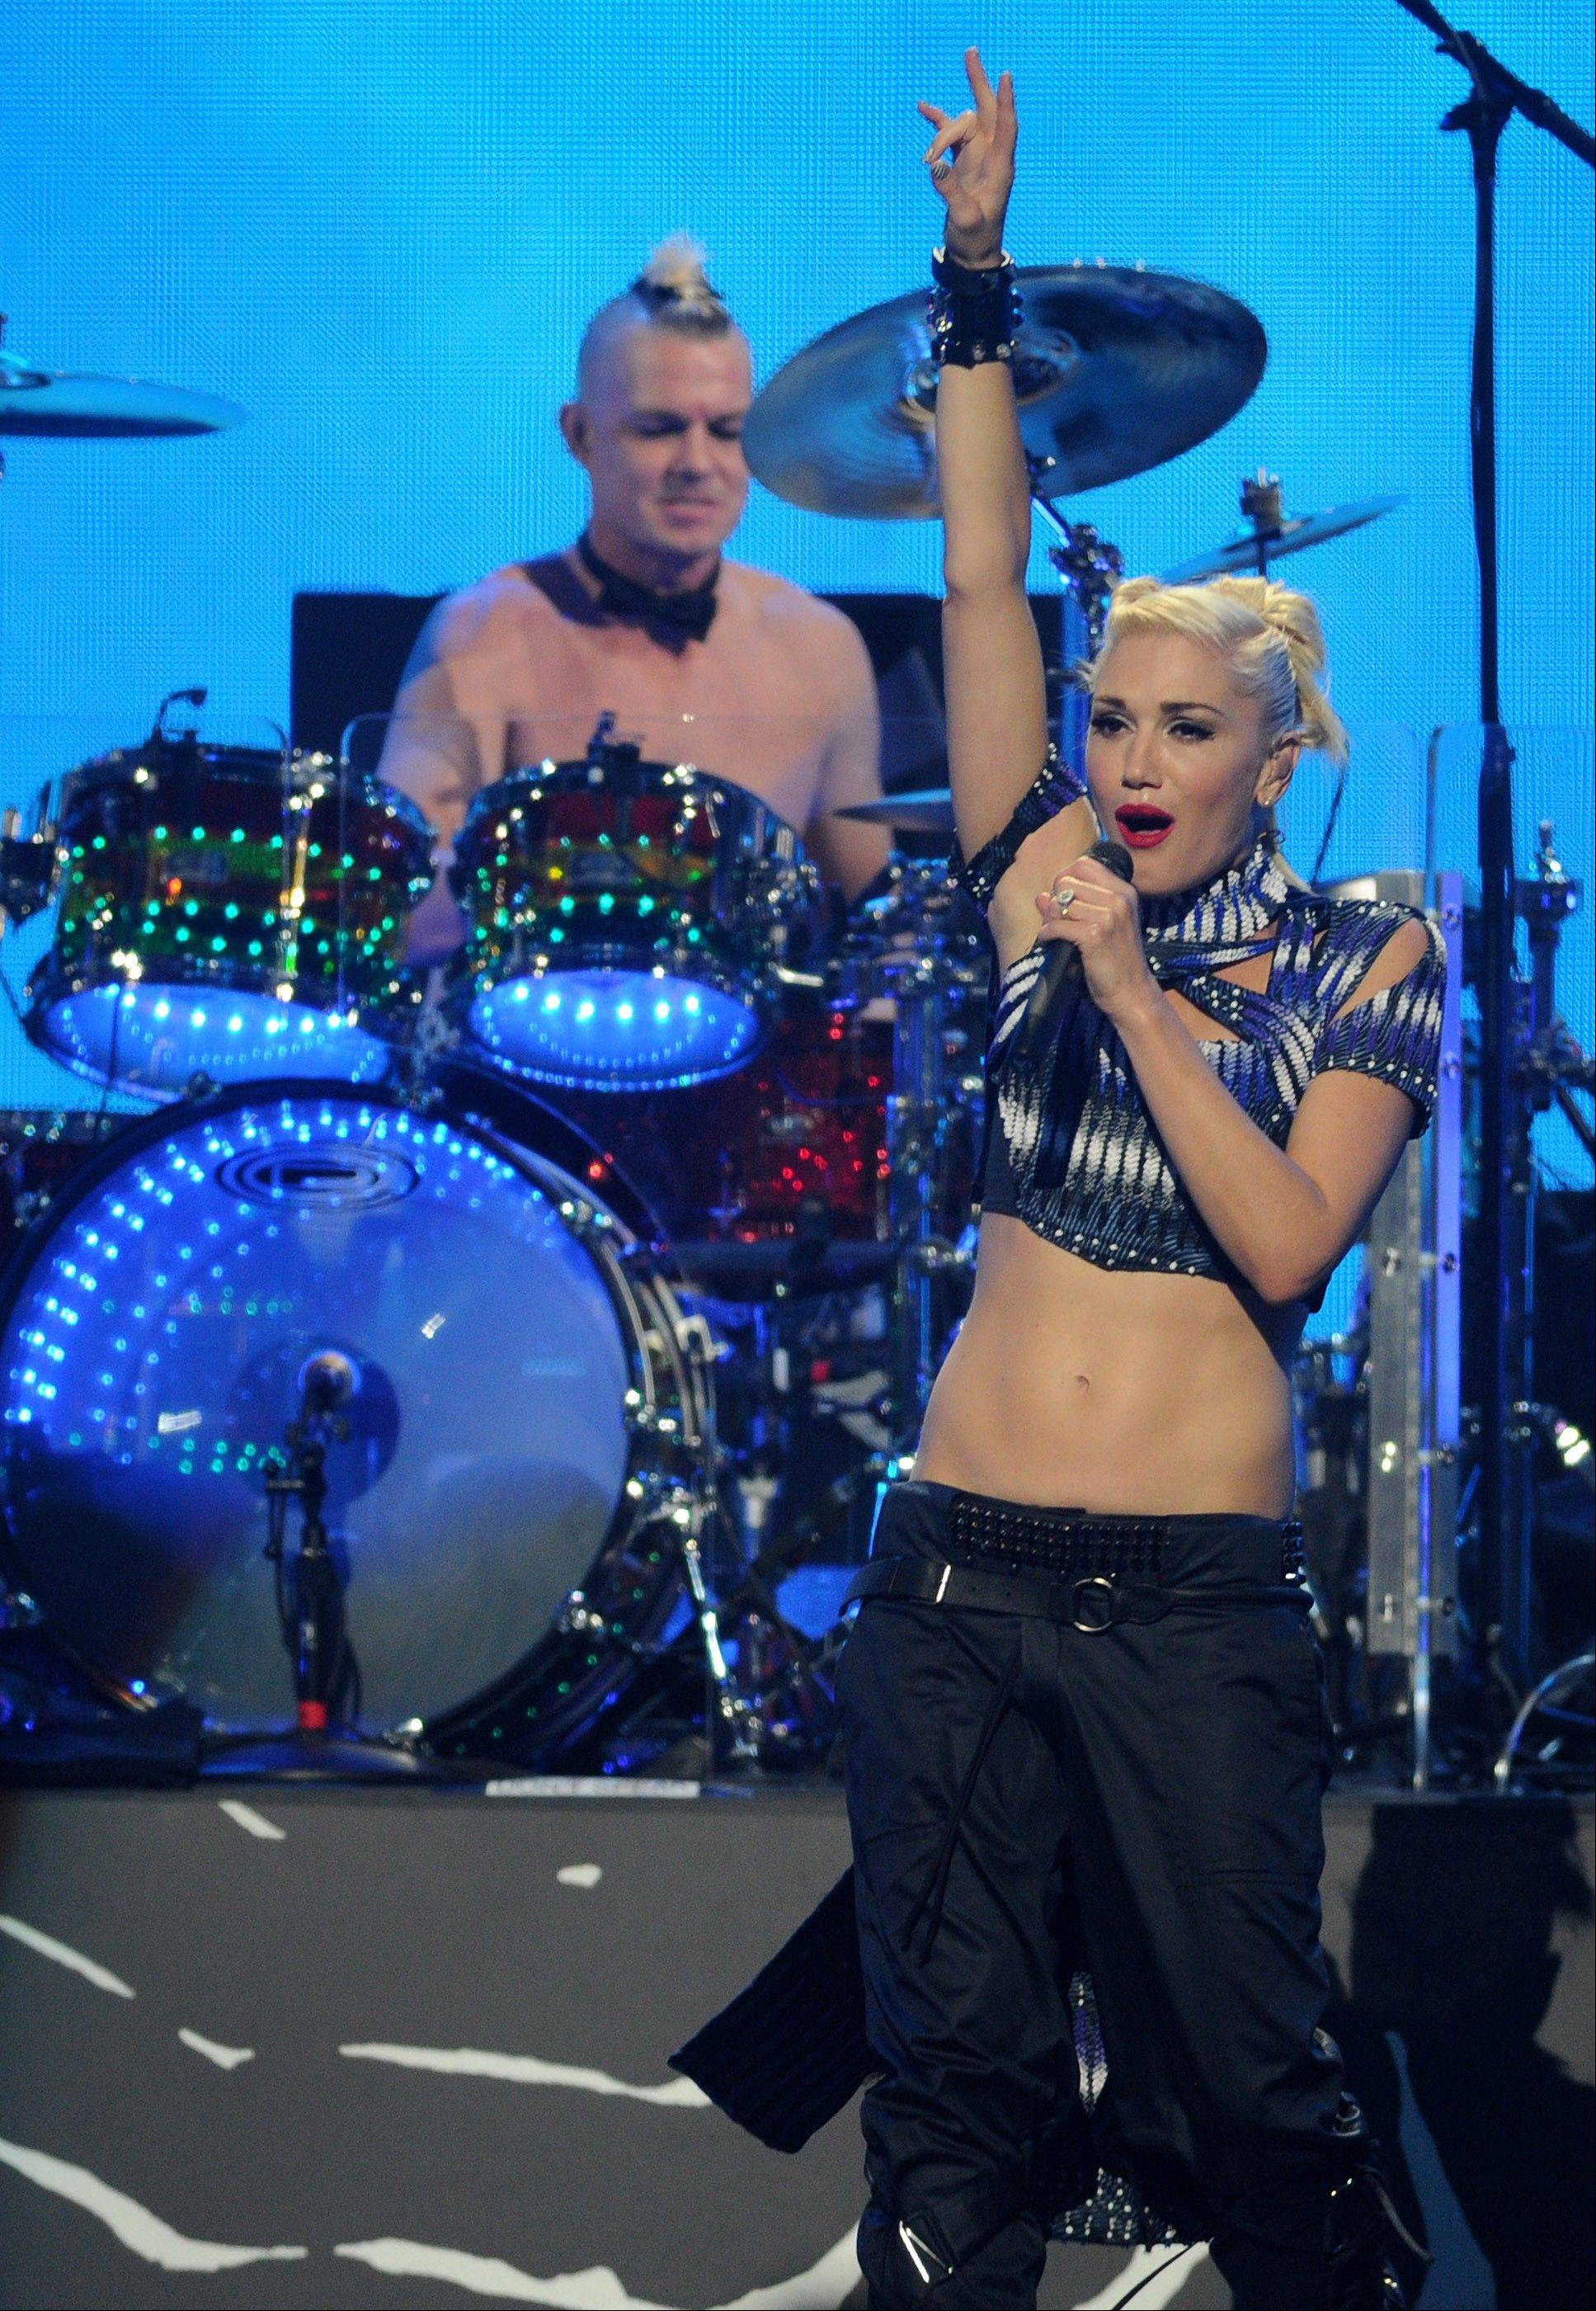 No Doubt ready to rock again after making babies